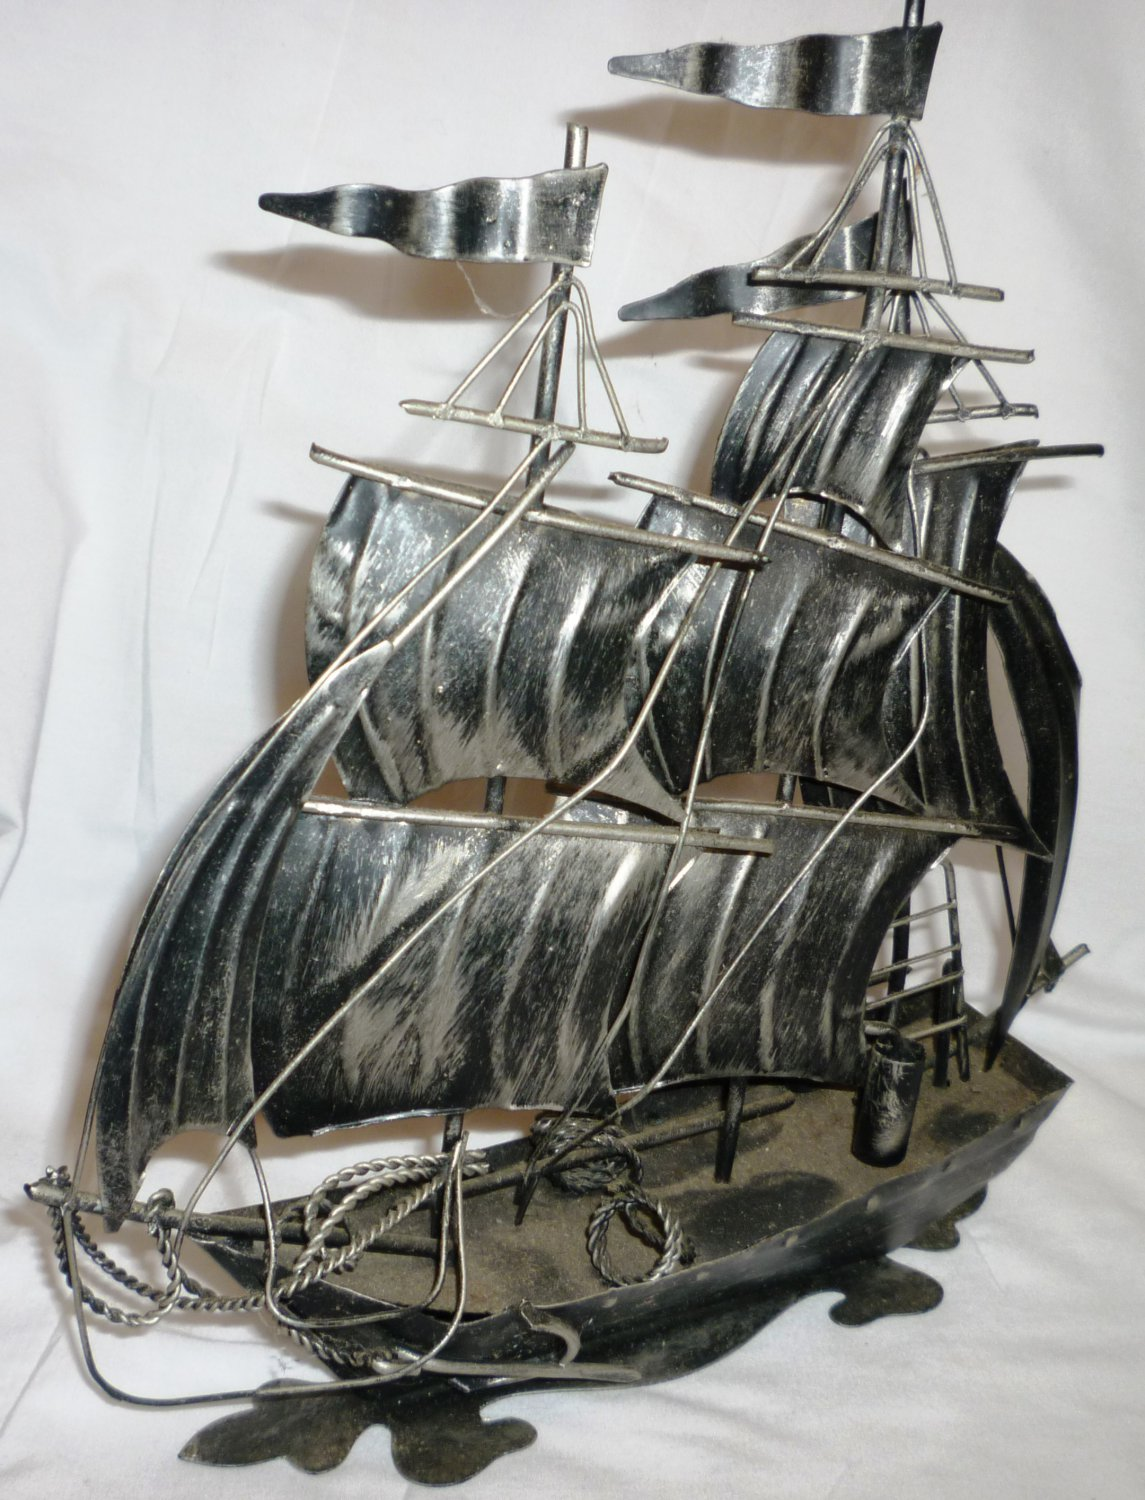 GORGEOUS METAL SCULPTURED SAILBOAT FIGURINE MARINE NAUTICAL DECOR